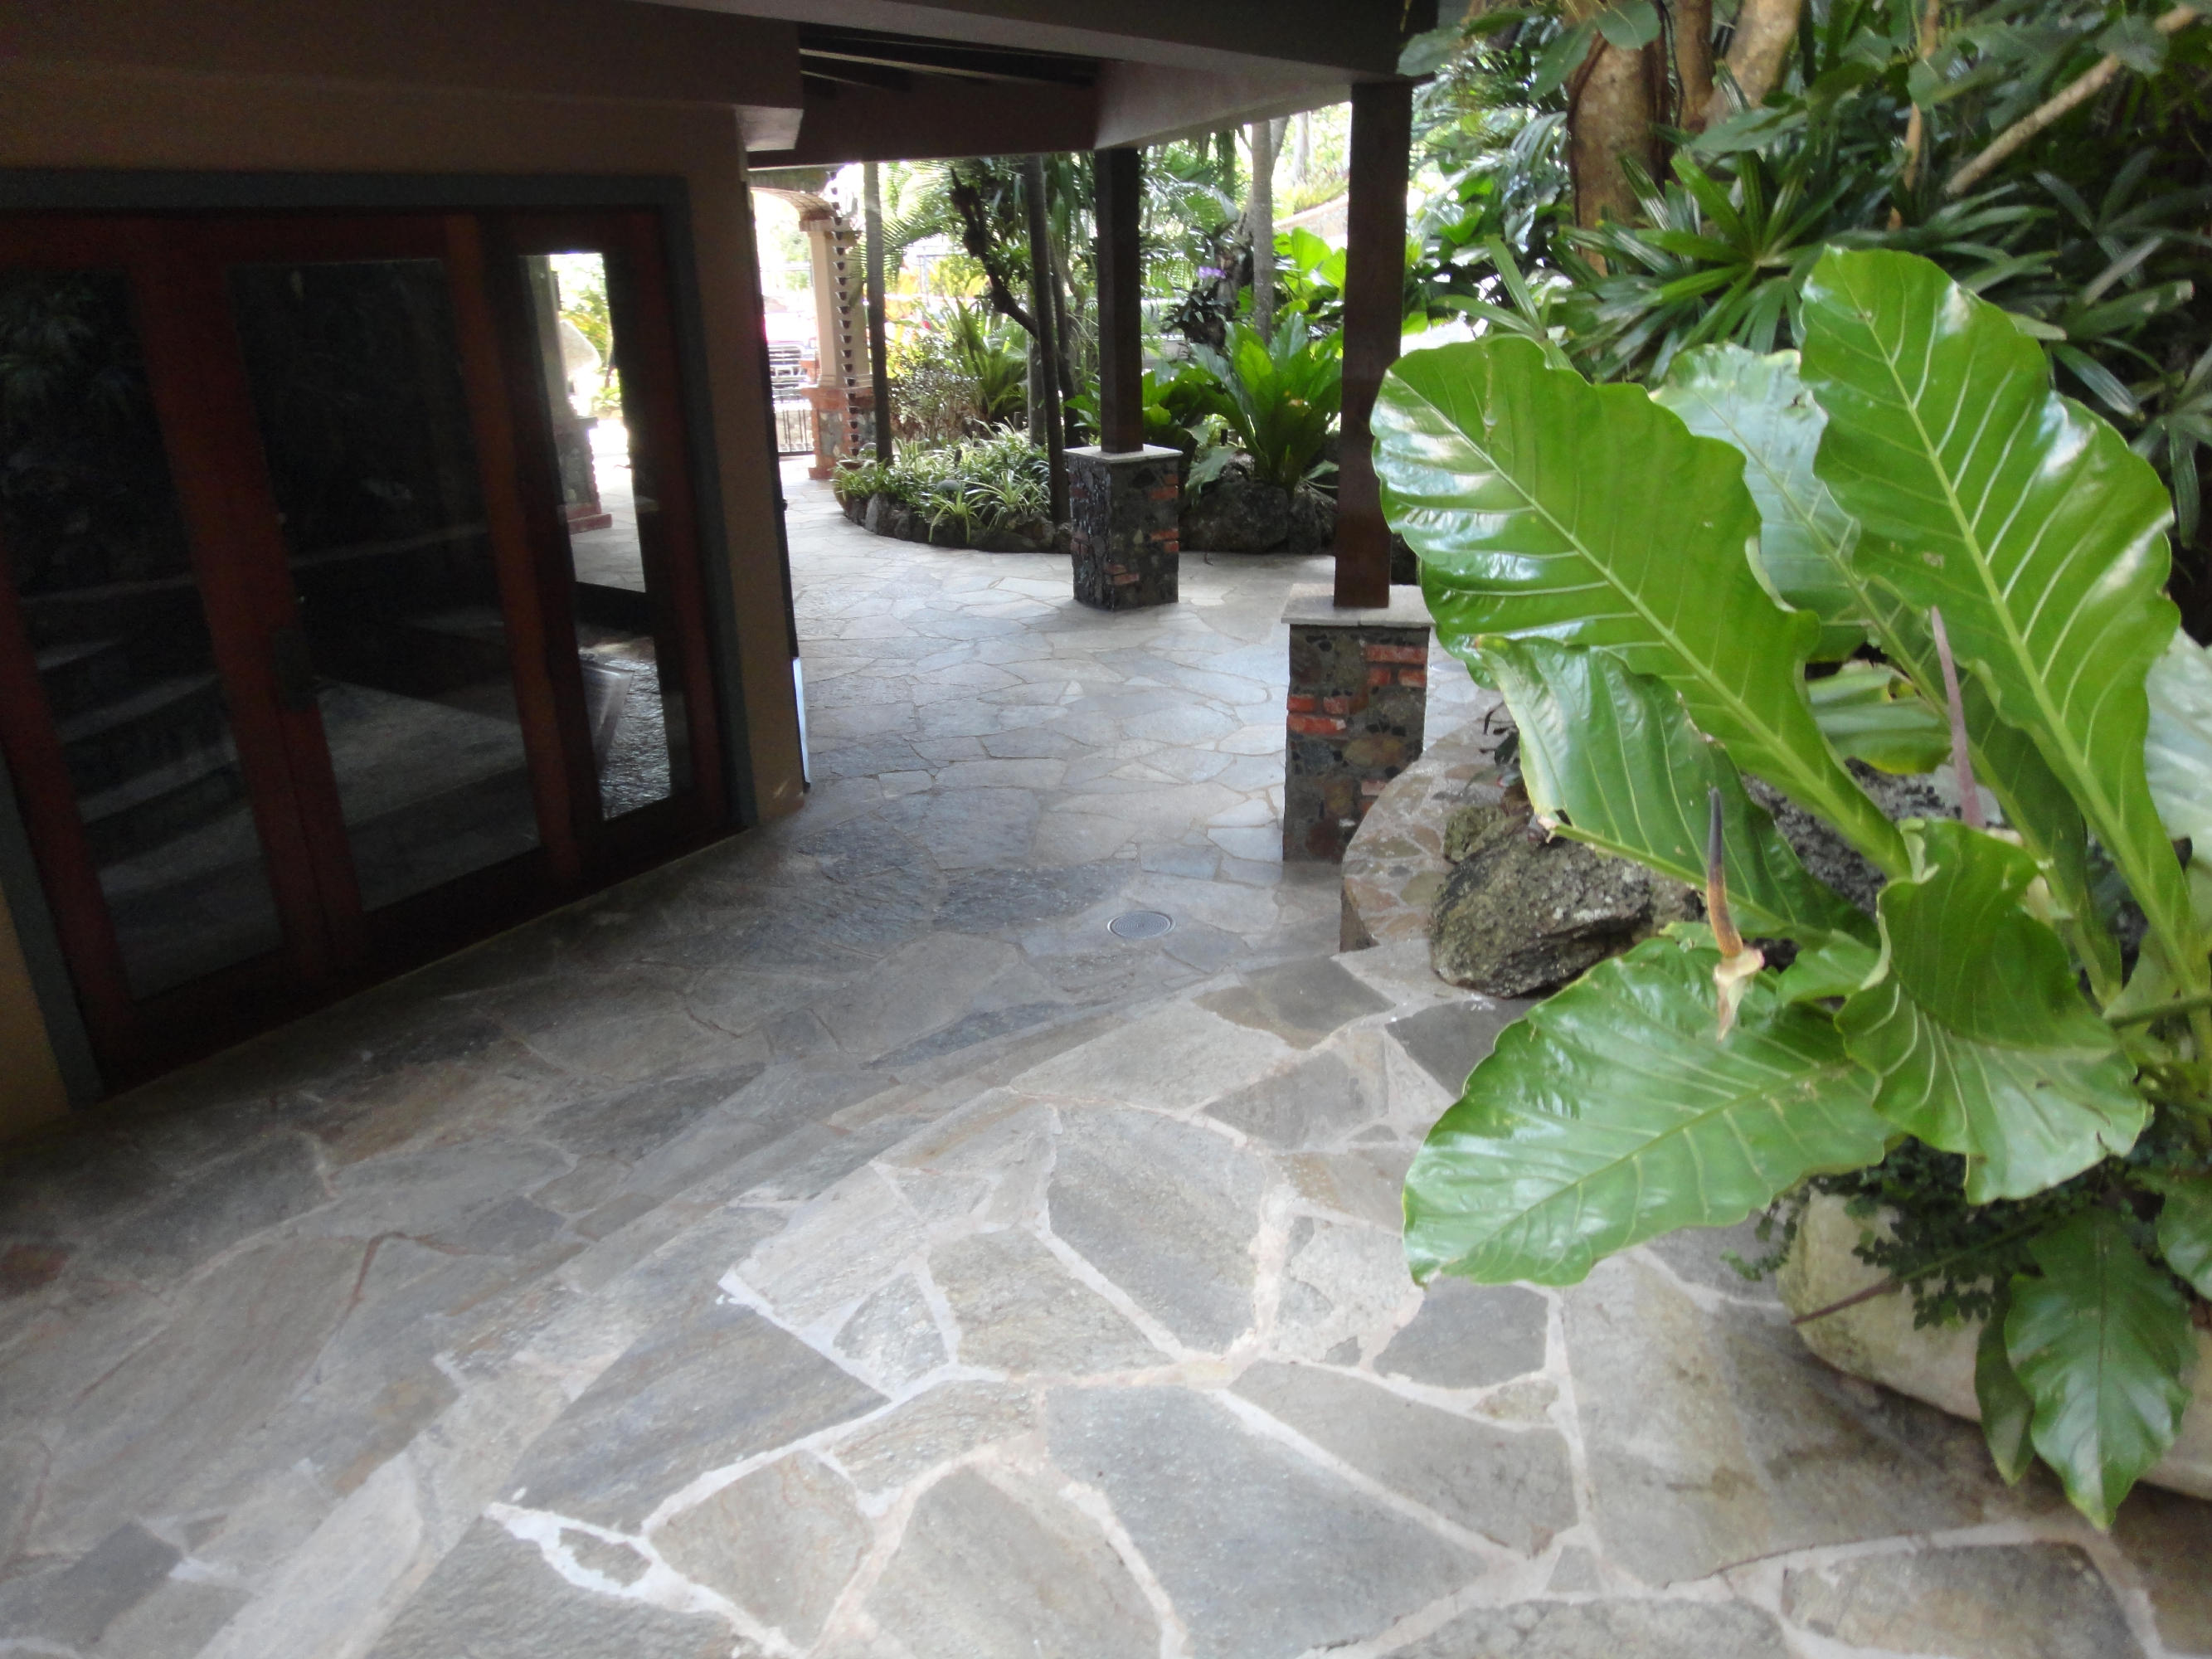 Kitchen entrance and walkways